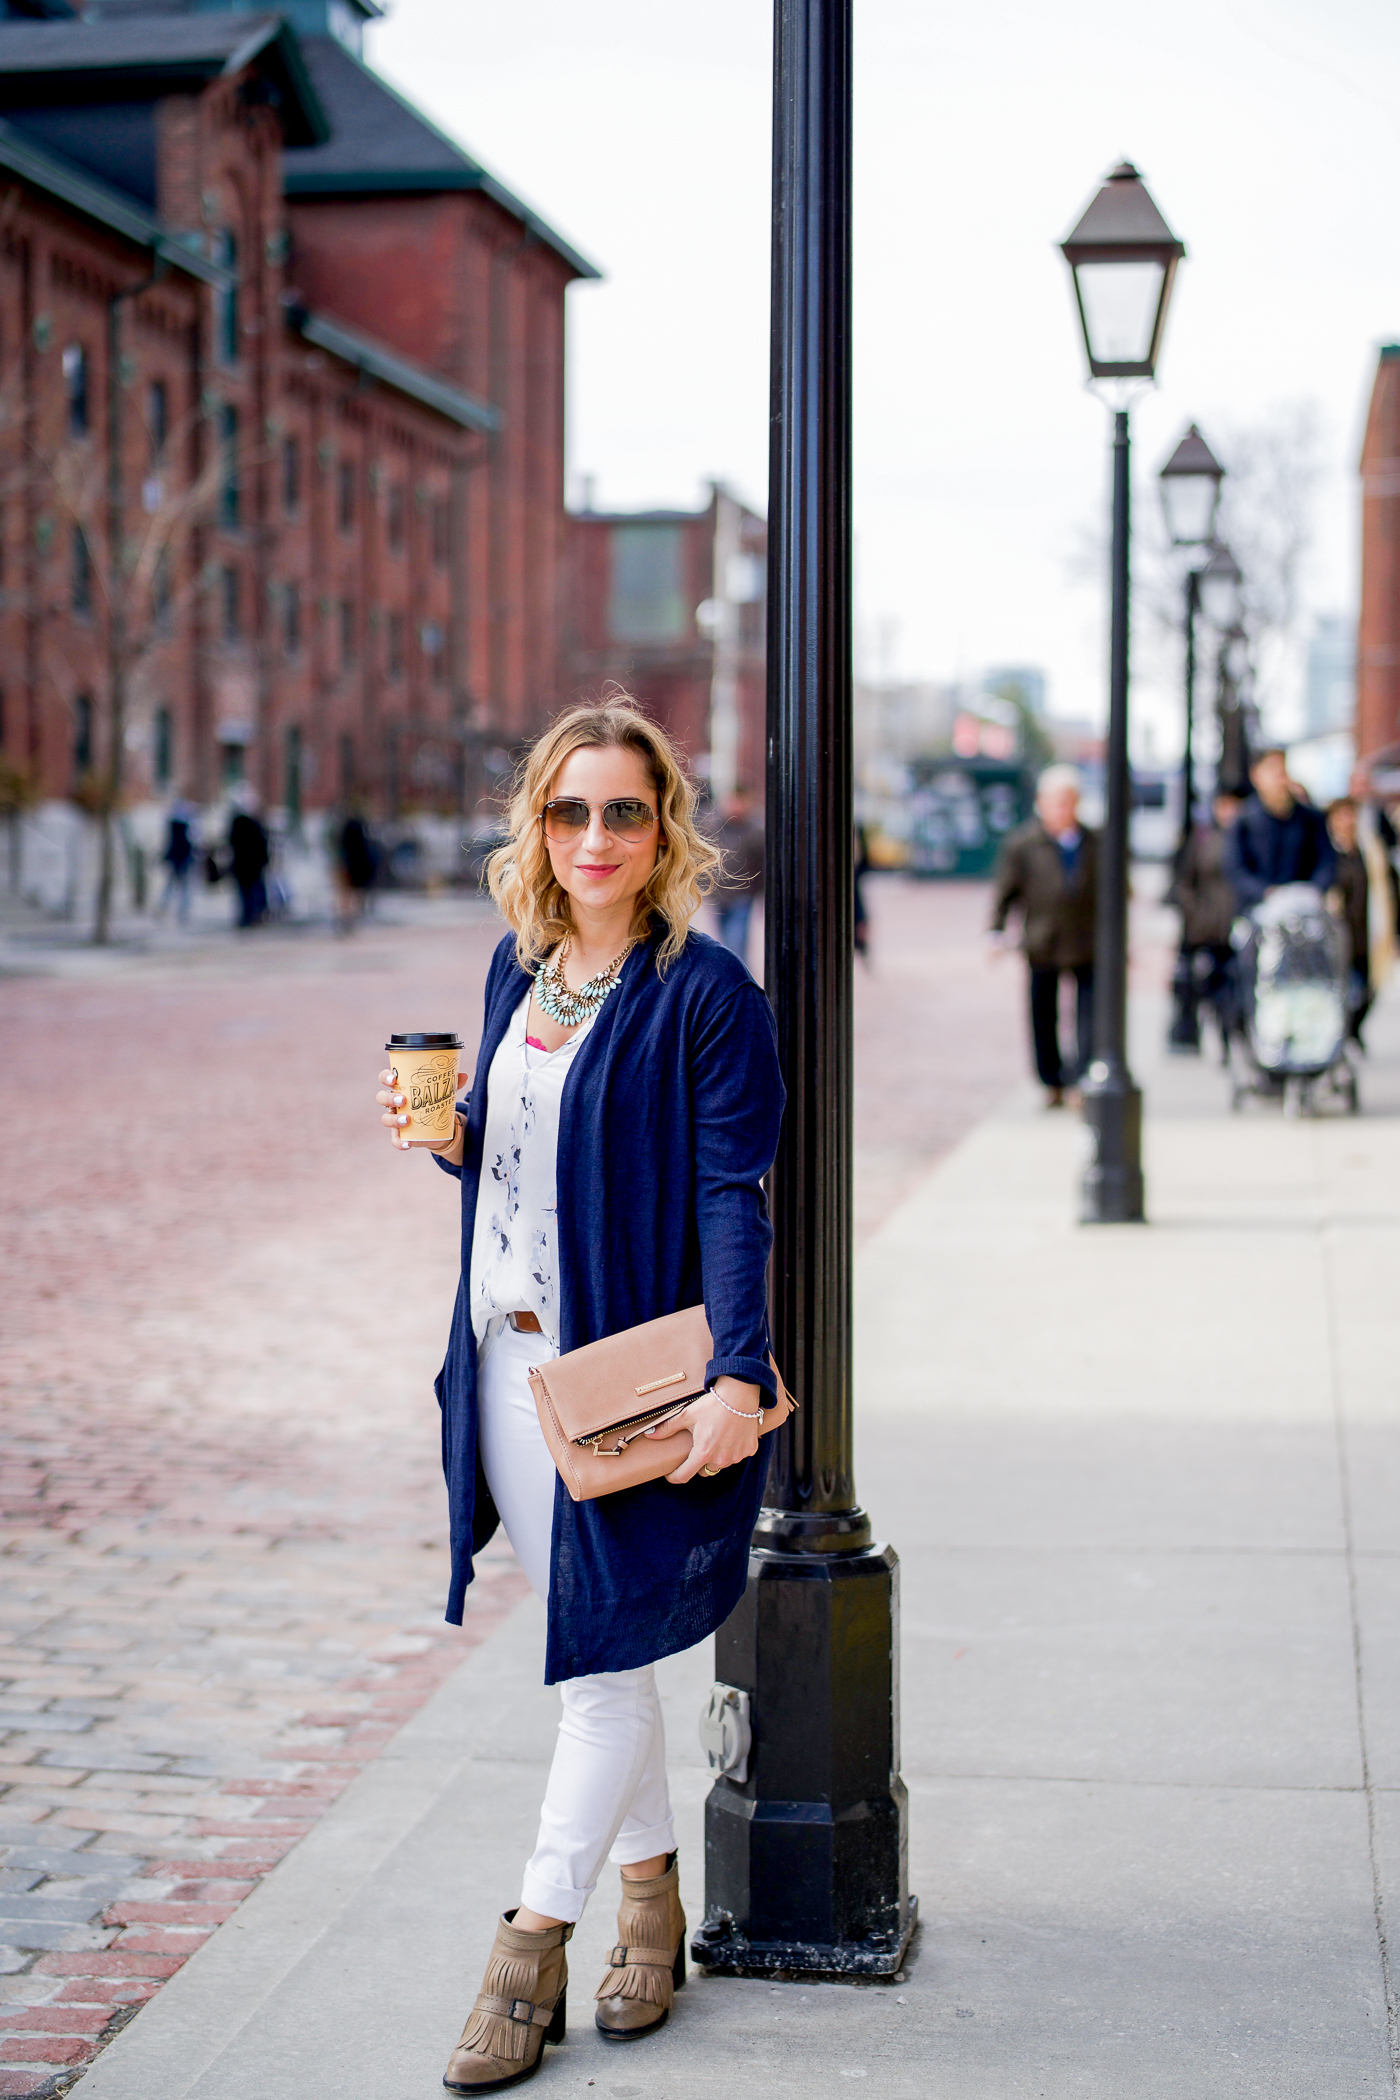 Canadian fashion and lifestyle blogger, Jackie of Something About That, drinking Balzac's Coffee in the Distillery District of Toronto